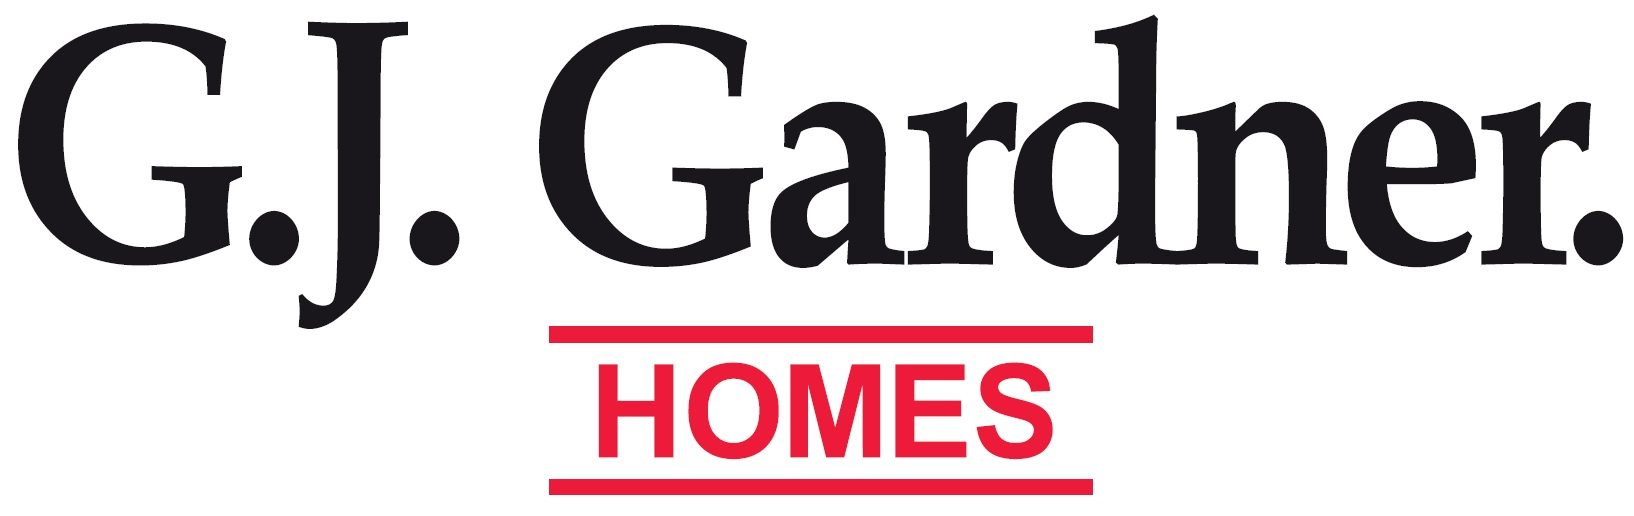 GJ Gardner Homes ready to build a house for Convoy!